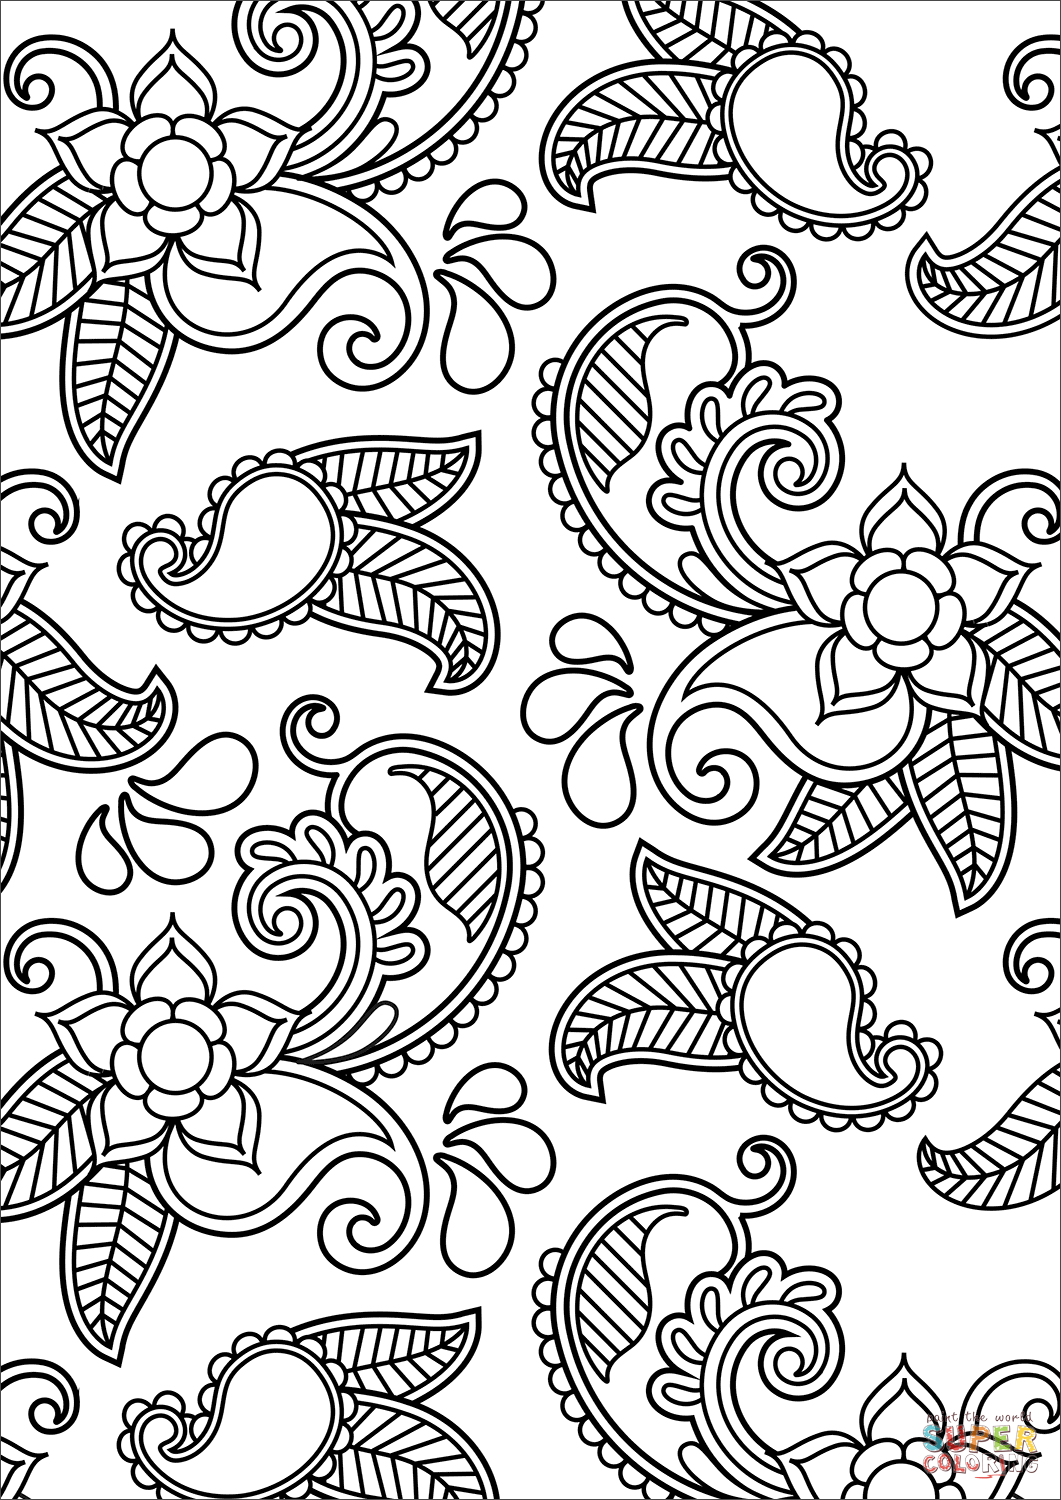 free printable paisley coloring pages paisley coloring page free printable coloring pages coloring paisley free printable pages